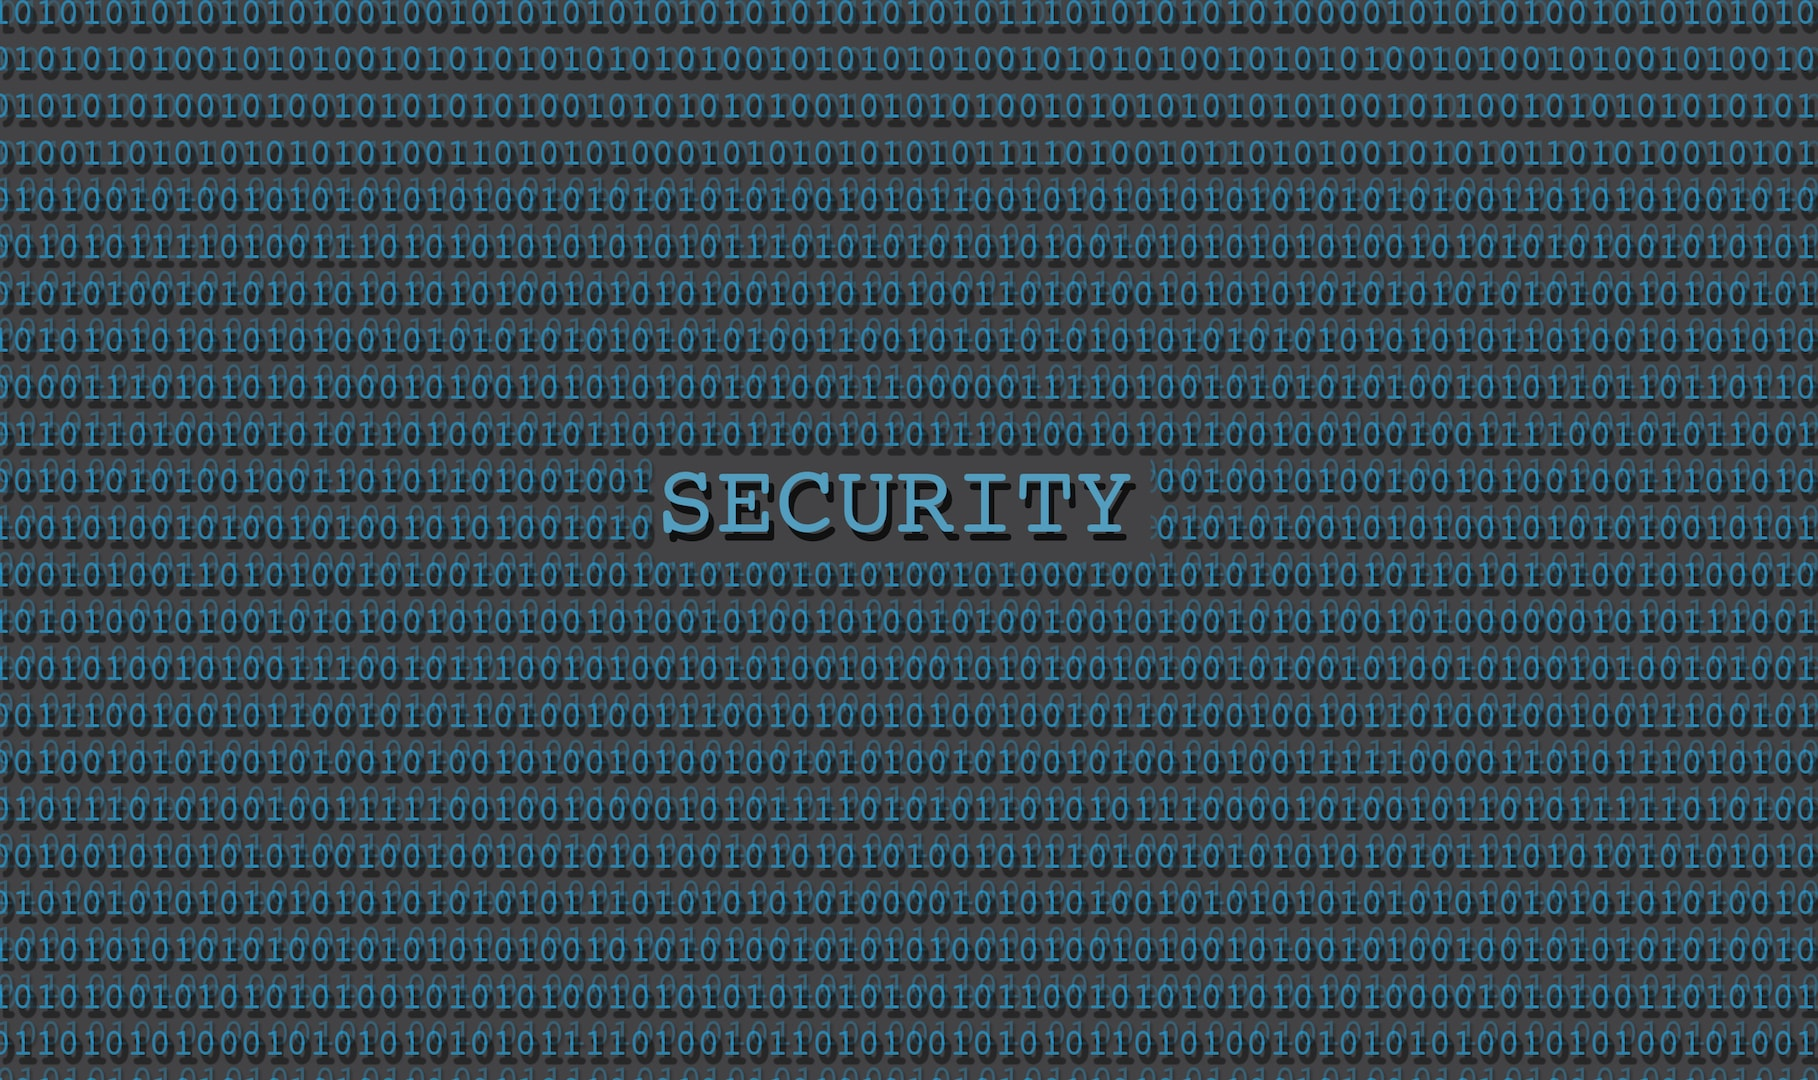 One less job for merchants with point-to-point encryption security